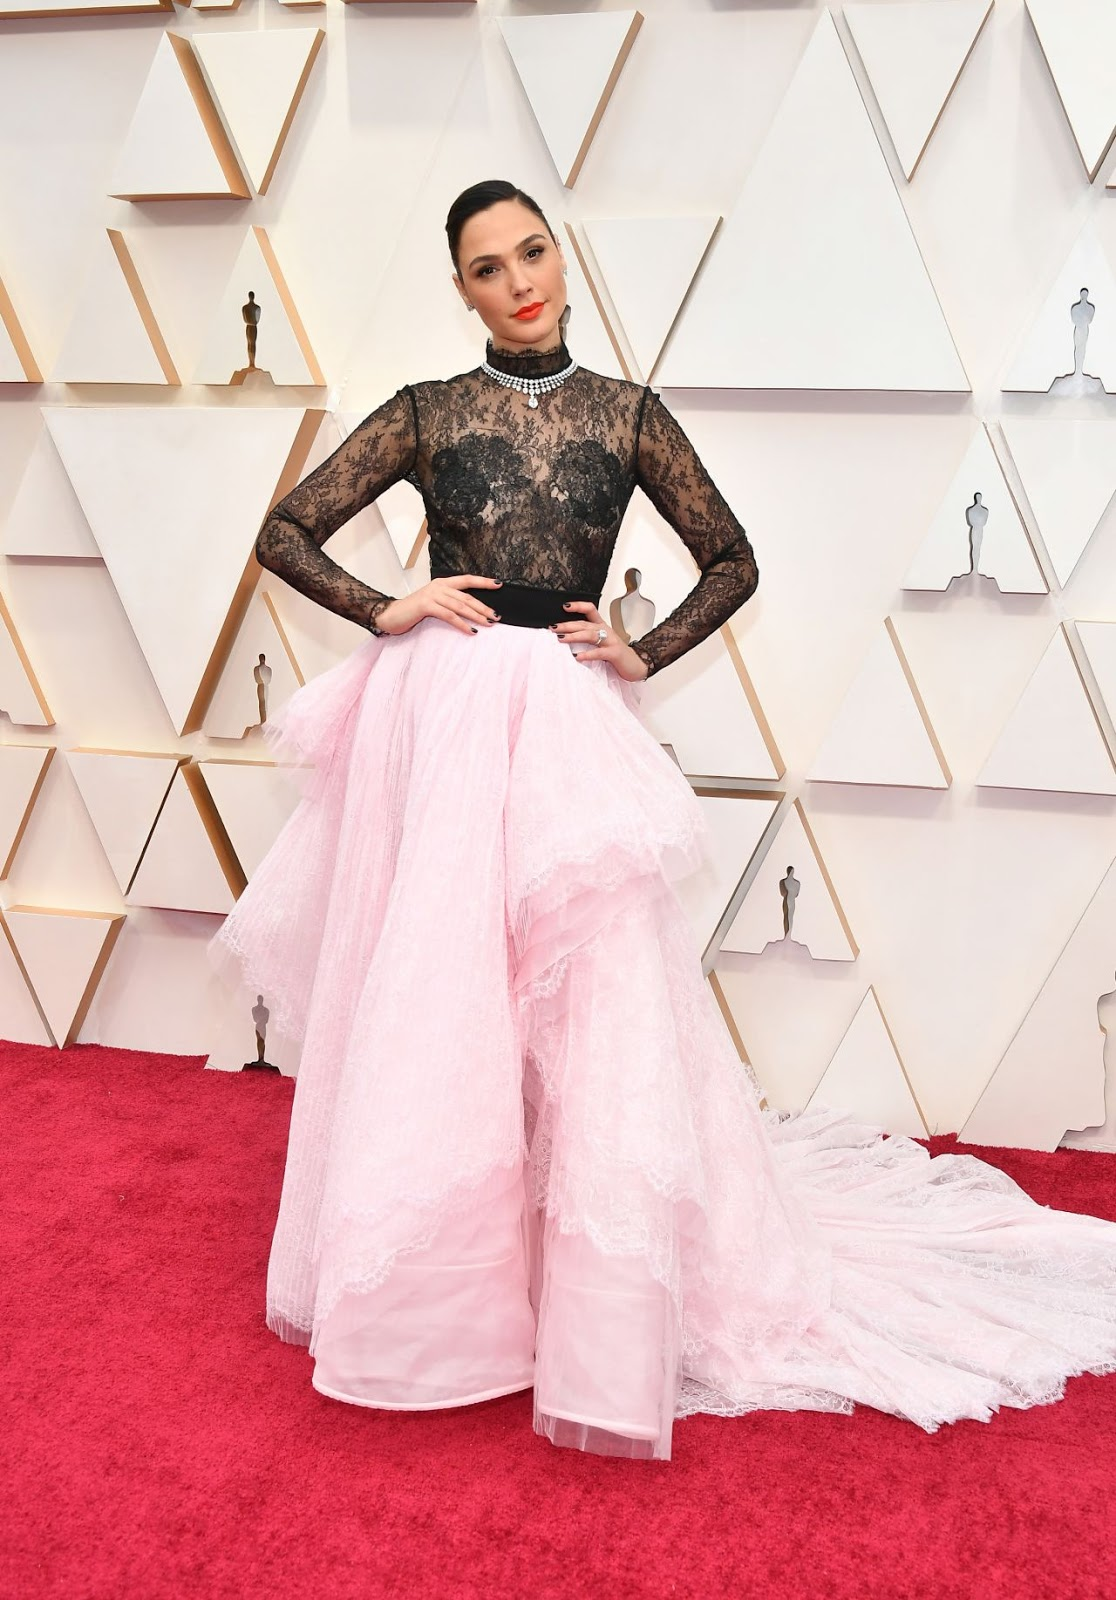 Gal Gadot wore a Givenchy Spring 2020 Haute Couture black lace bodysuit + pink silk organza skirt with lace petal ruffles to the 2020 Academy Awards.